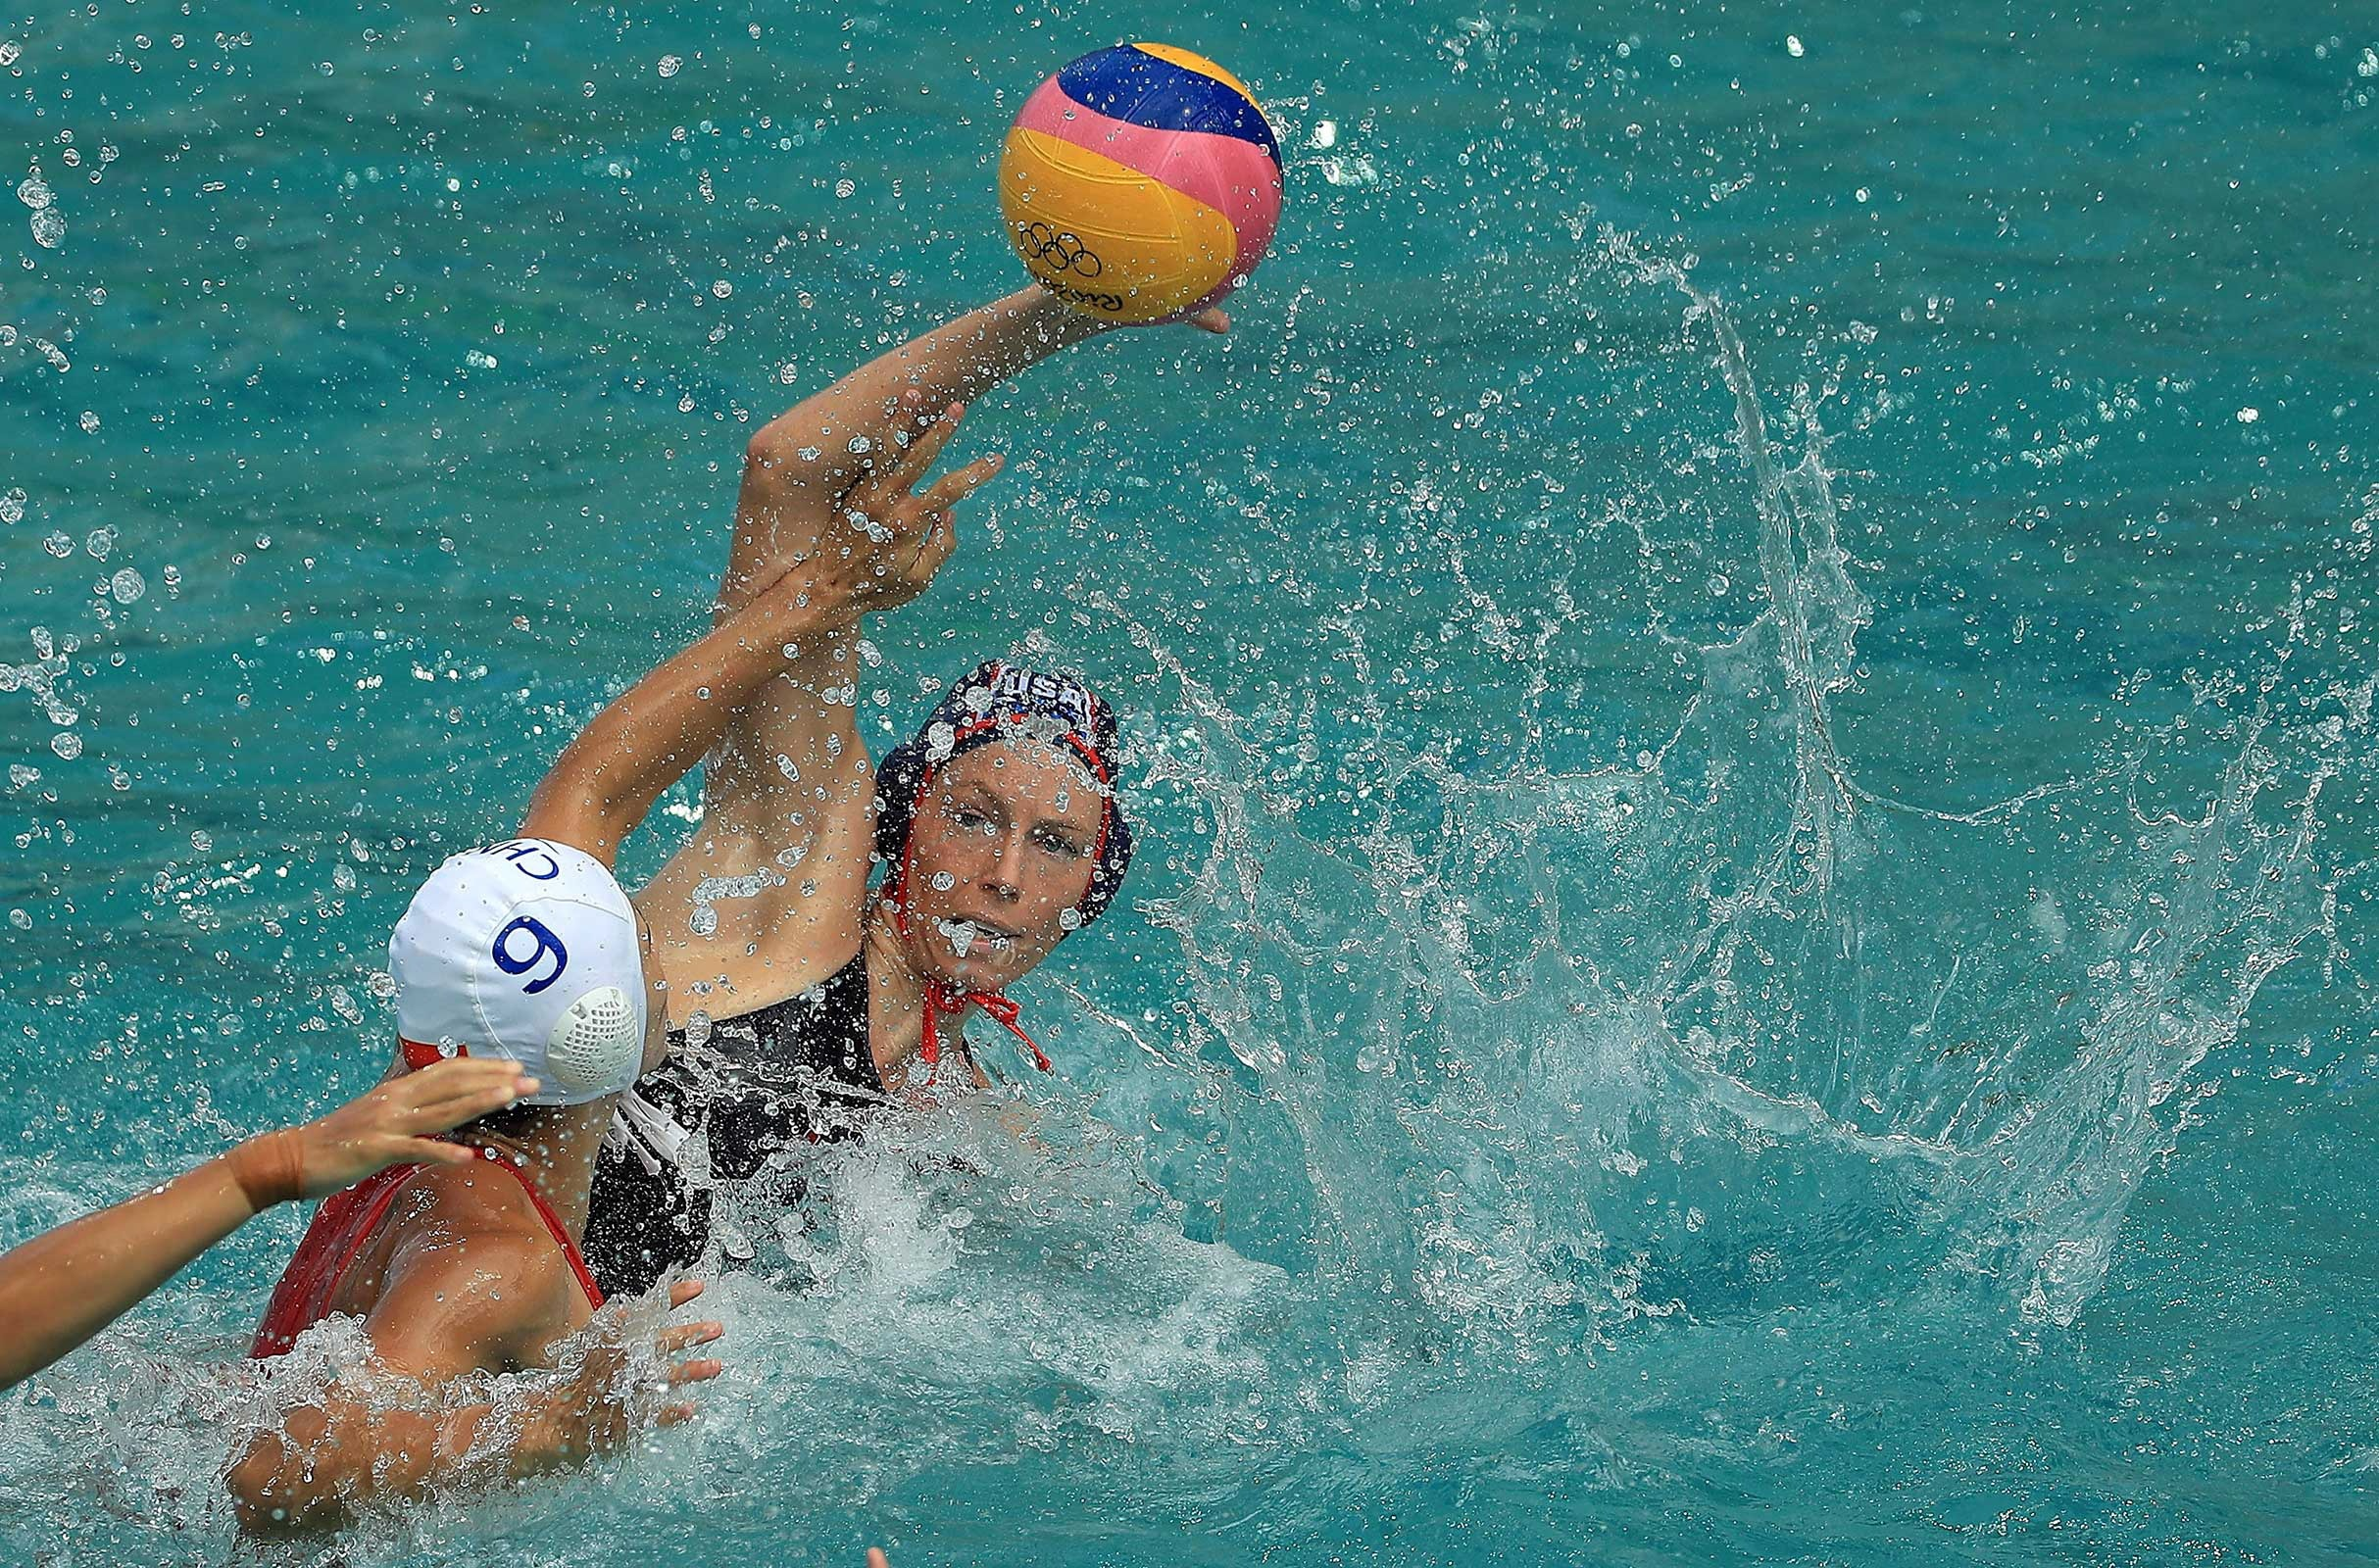 Women's Waterpolo - Preliminary Round - Group B